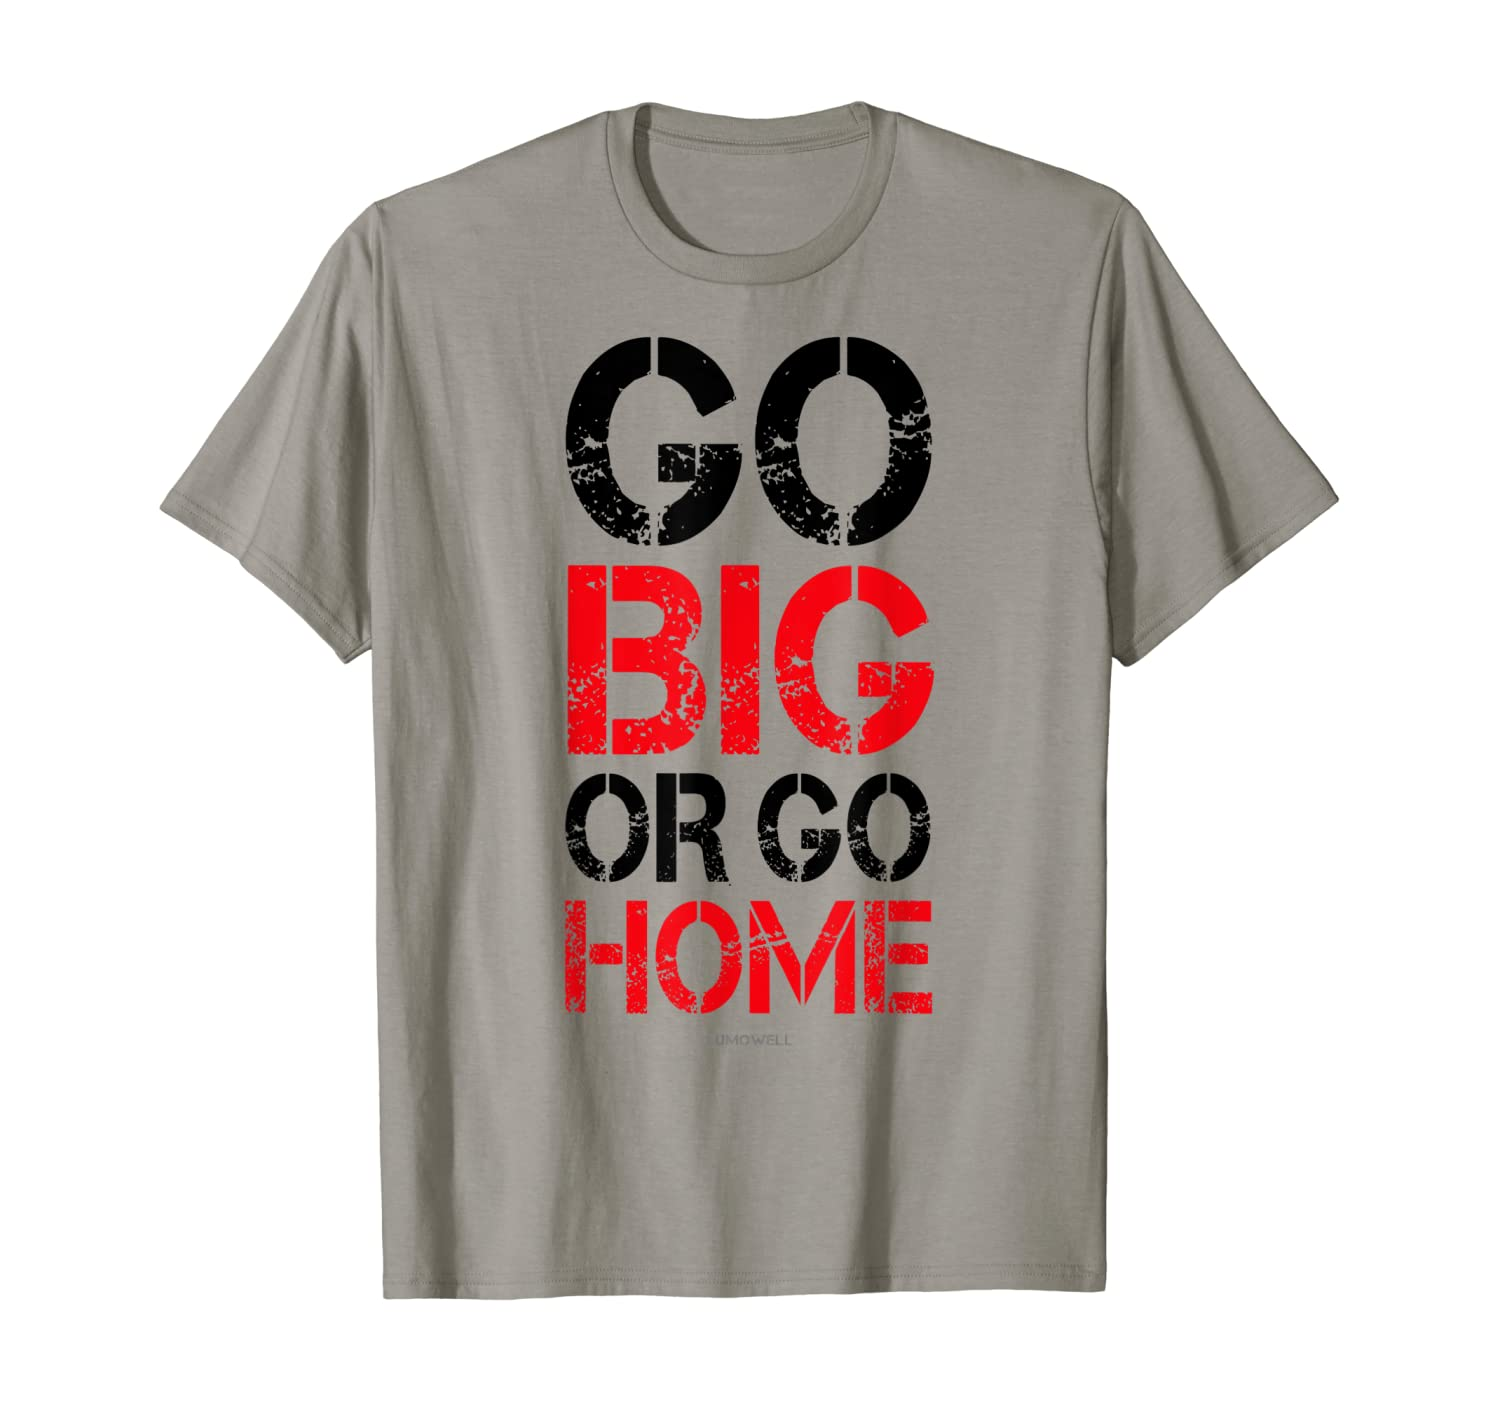 Go Big or Go Home T-shirt - Workout Motivational Shirt